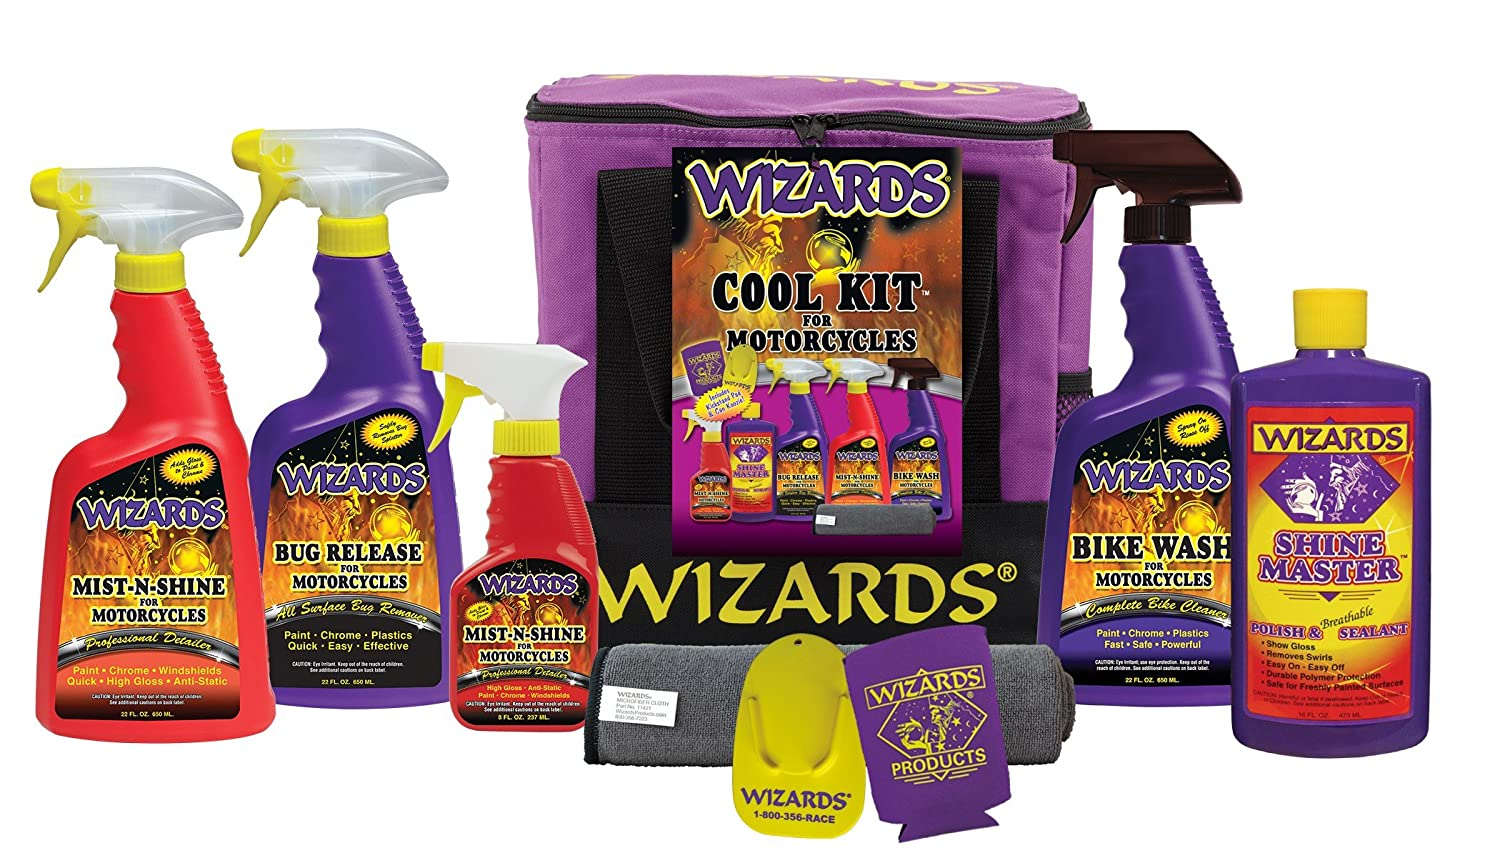 Wizards Products 22700 Motorcycle Cool Kit